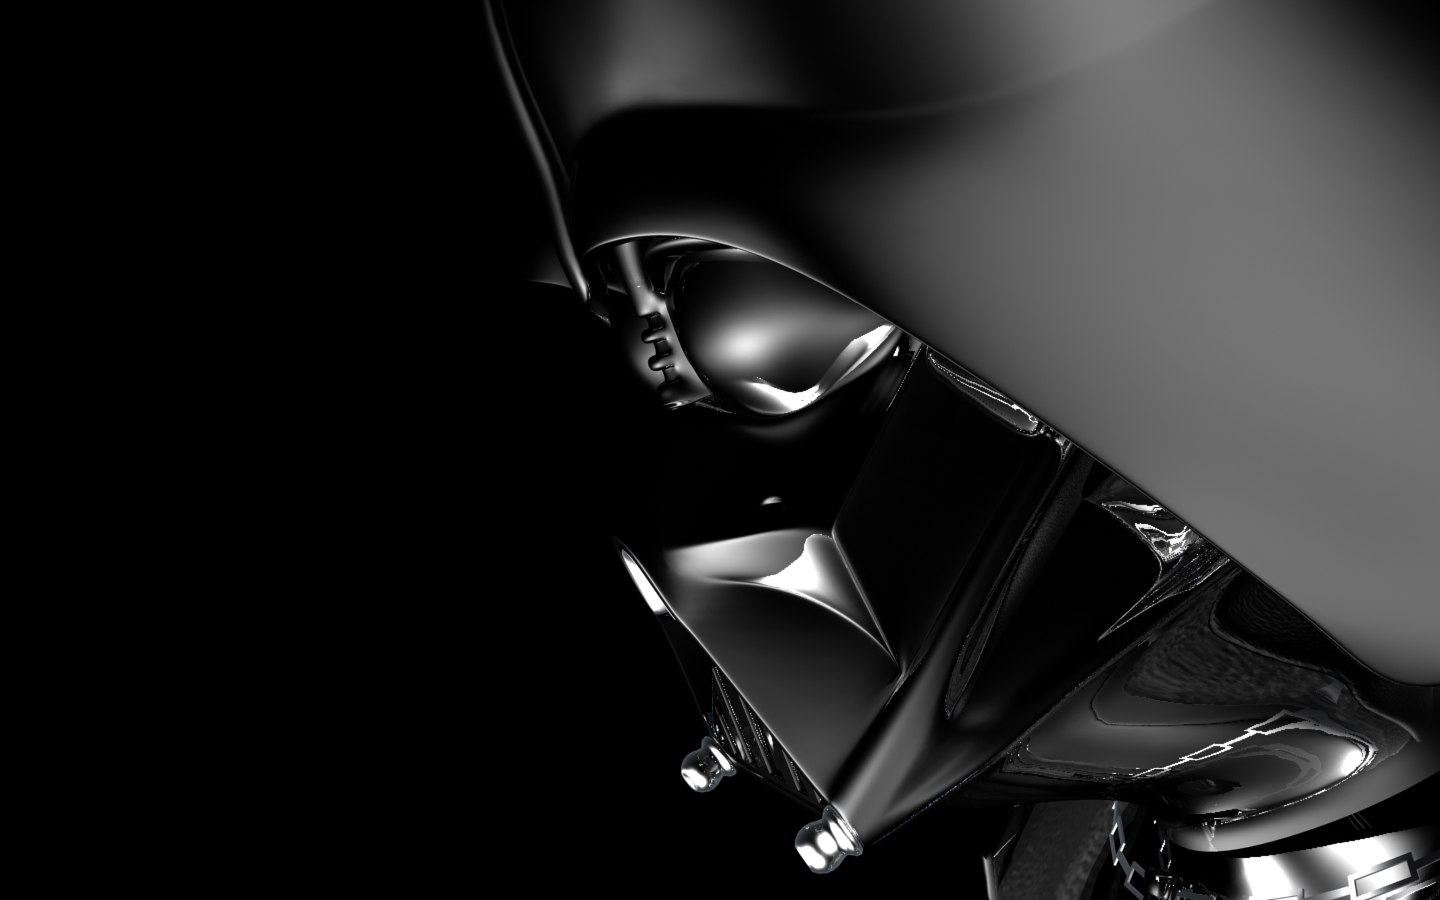 10 Star Wars Darth Vader Desktop Wallpapers [Star Wars] The 1440x900